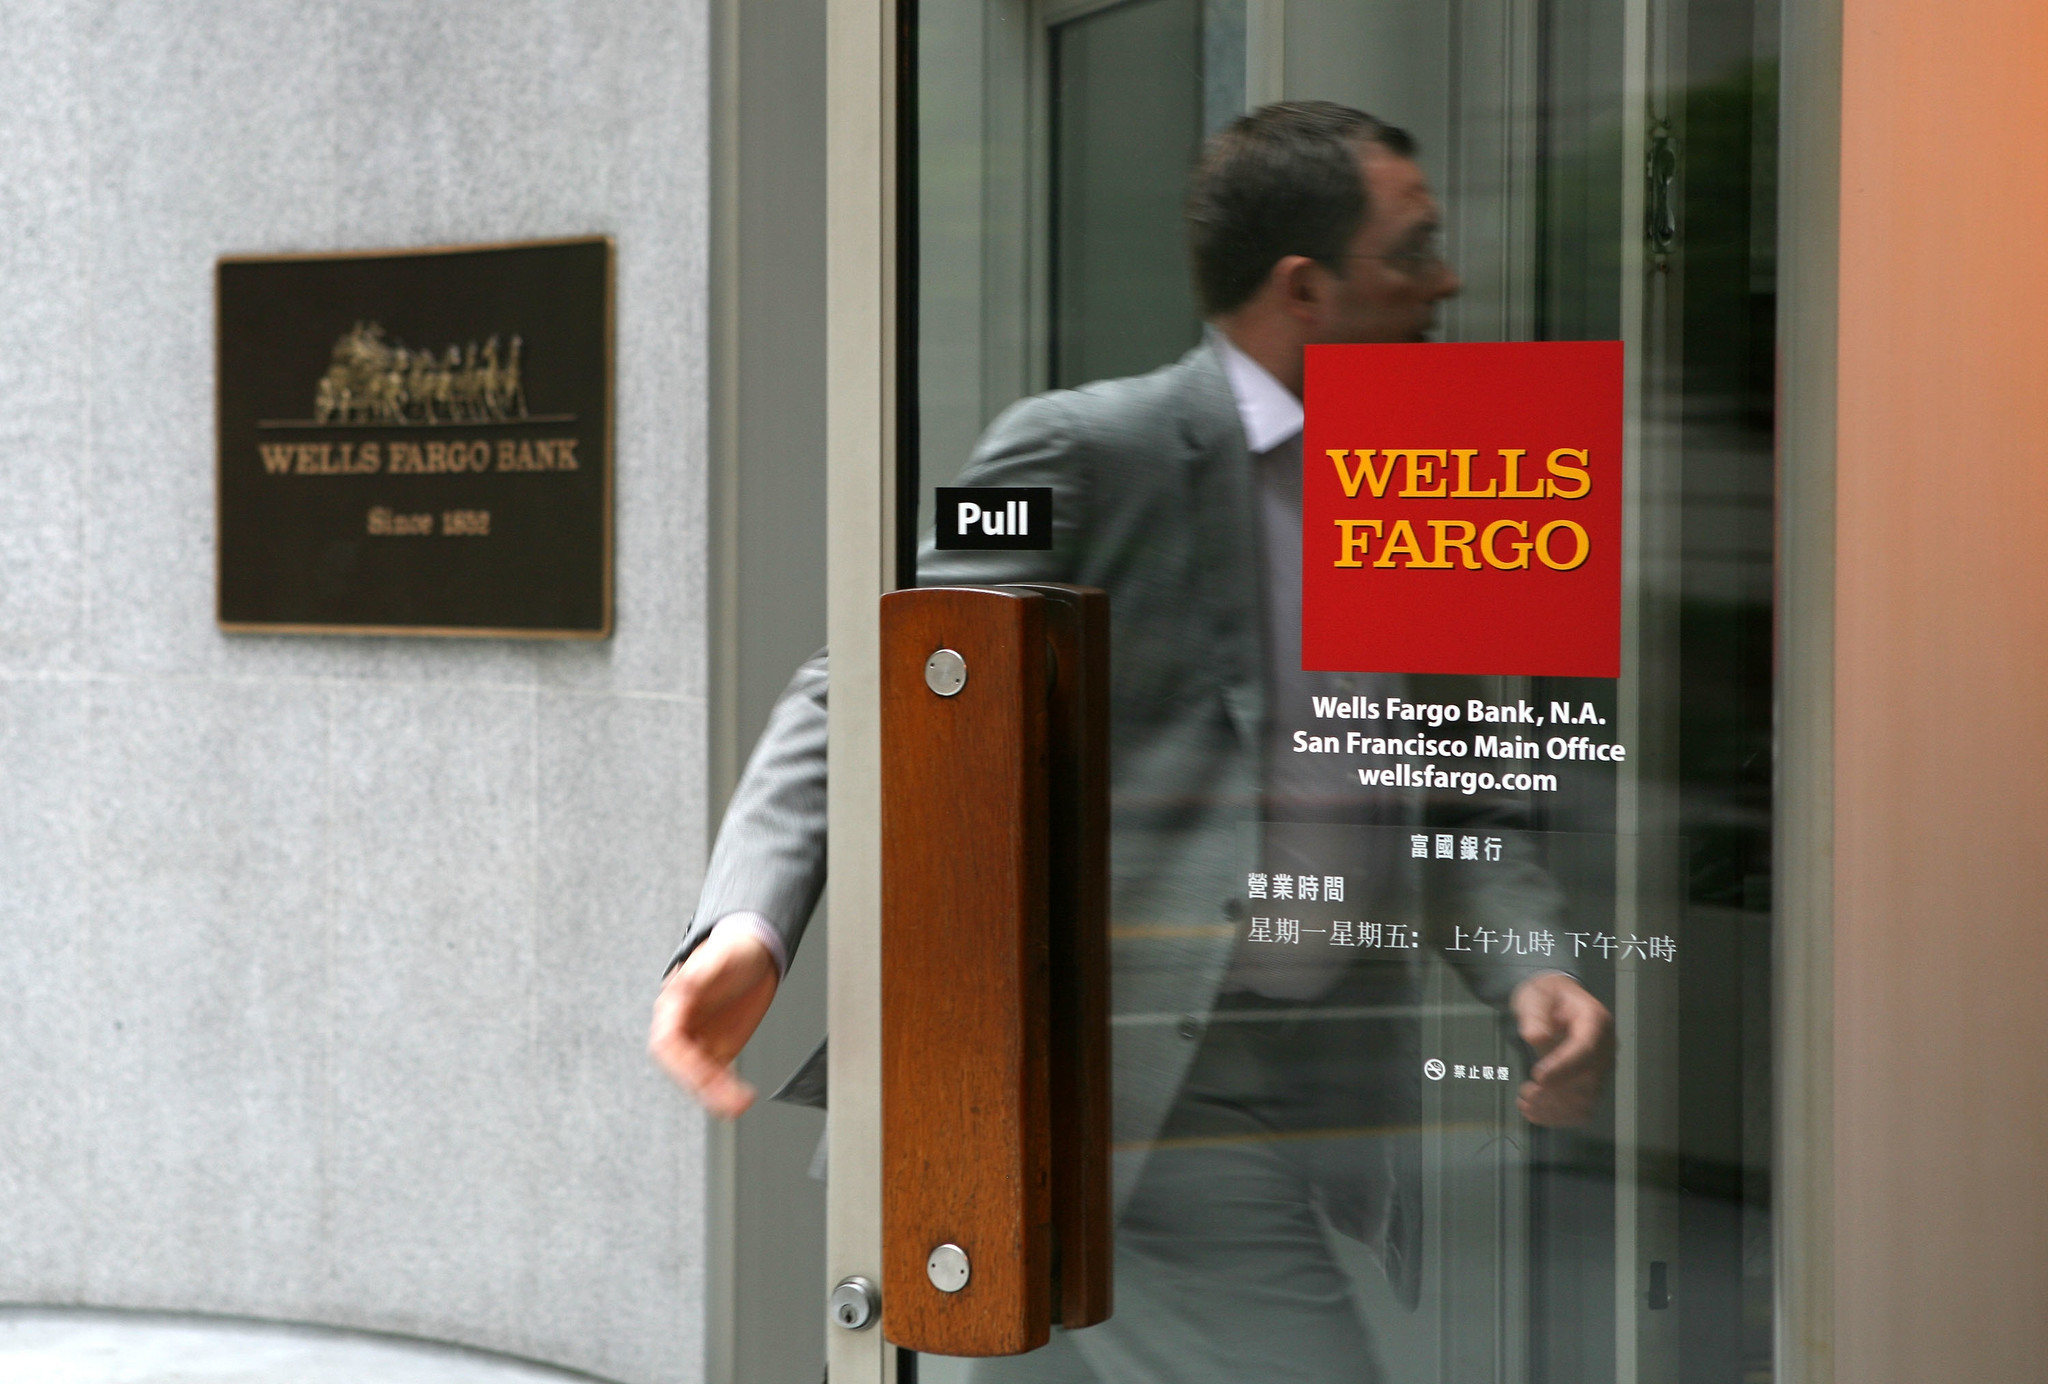 Wells Fargo to pay 110 million to settle lawsuits over